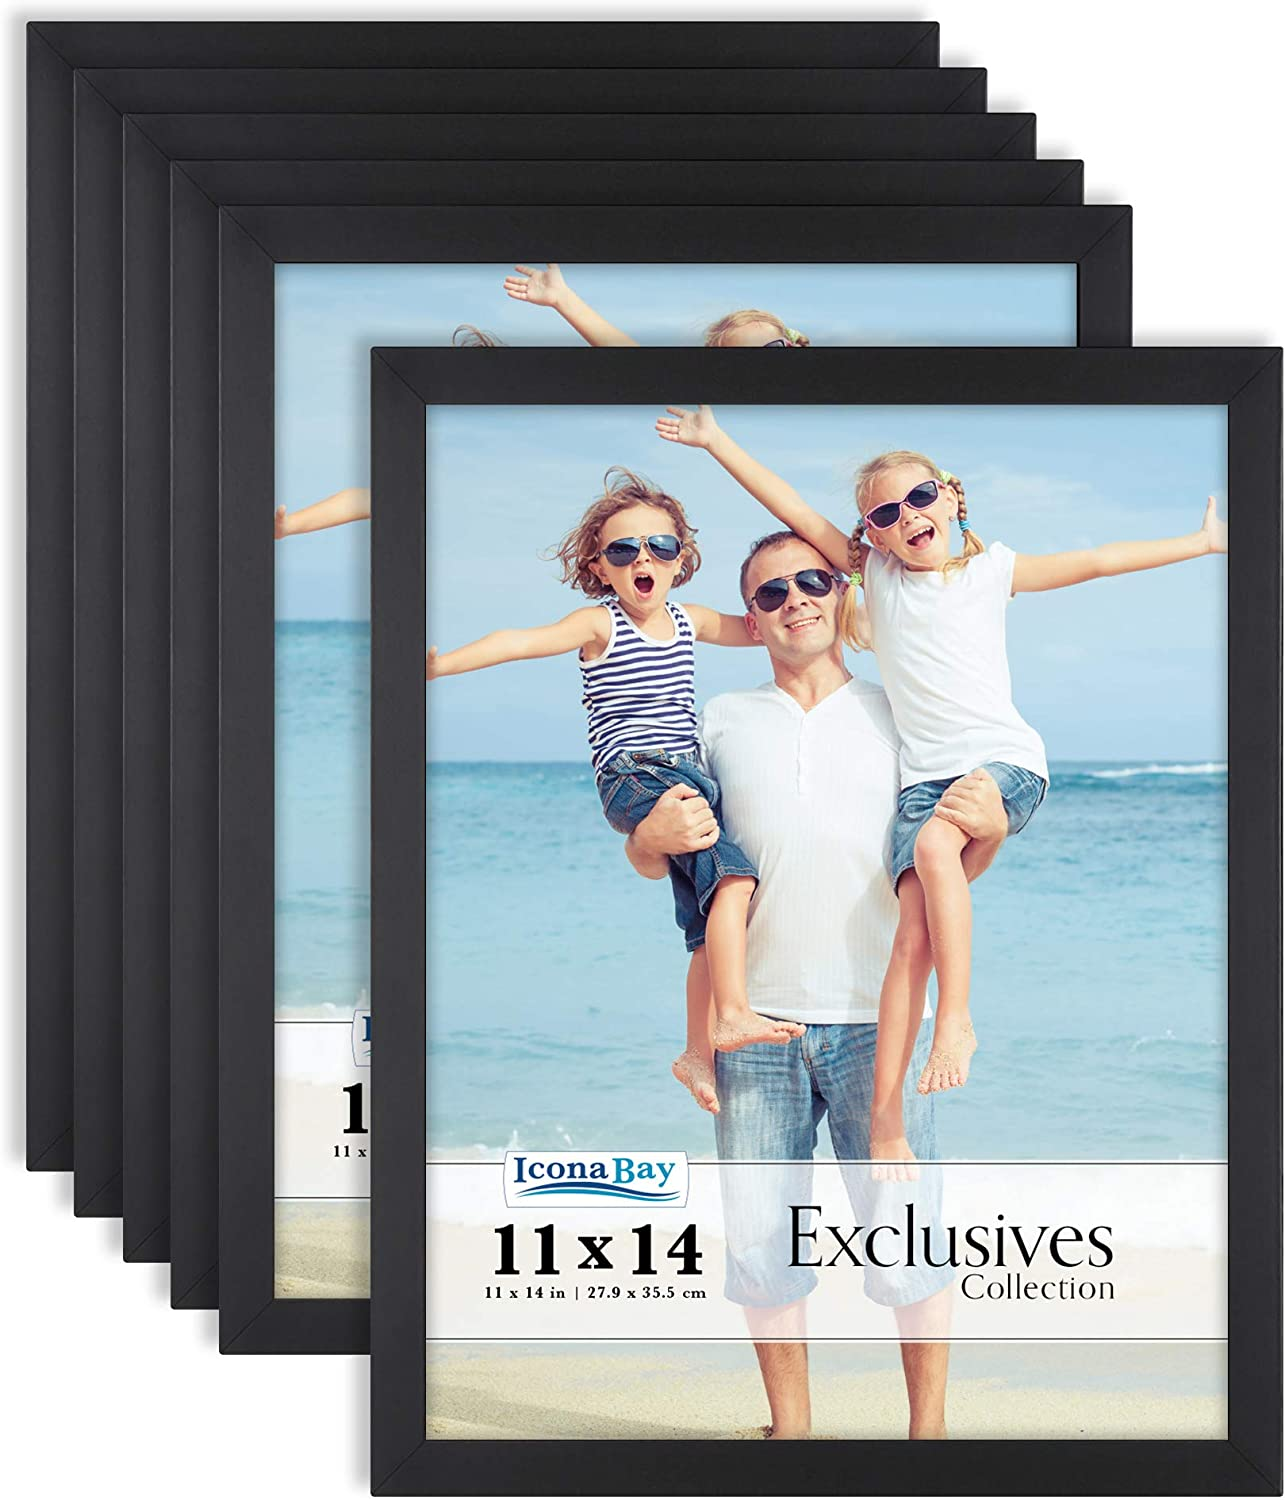 Icona Bay 11x14 Picture Frames (Black, 6 Pack), Sturdy Wood Composite Photo Frames 11 x 14, Sleek Design, Table Top or Wall Mount, Exclusives Collection